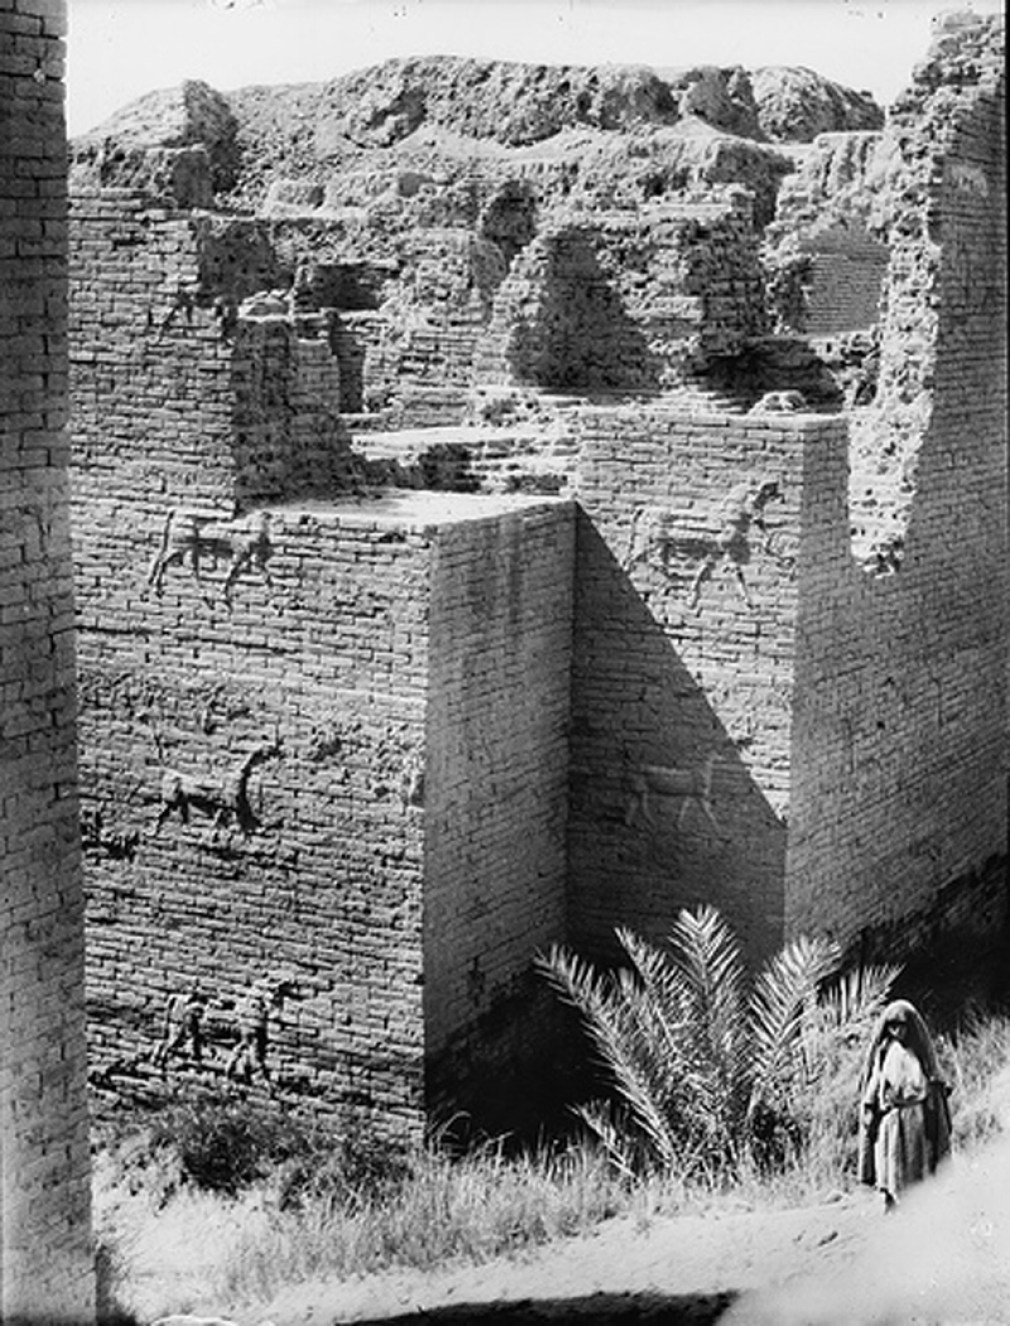 1932 Photograph of the Ishtar Gate from the Library of Congress Prints and Photographs Division Washington, D.C.